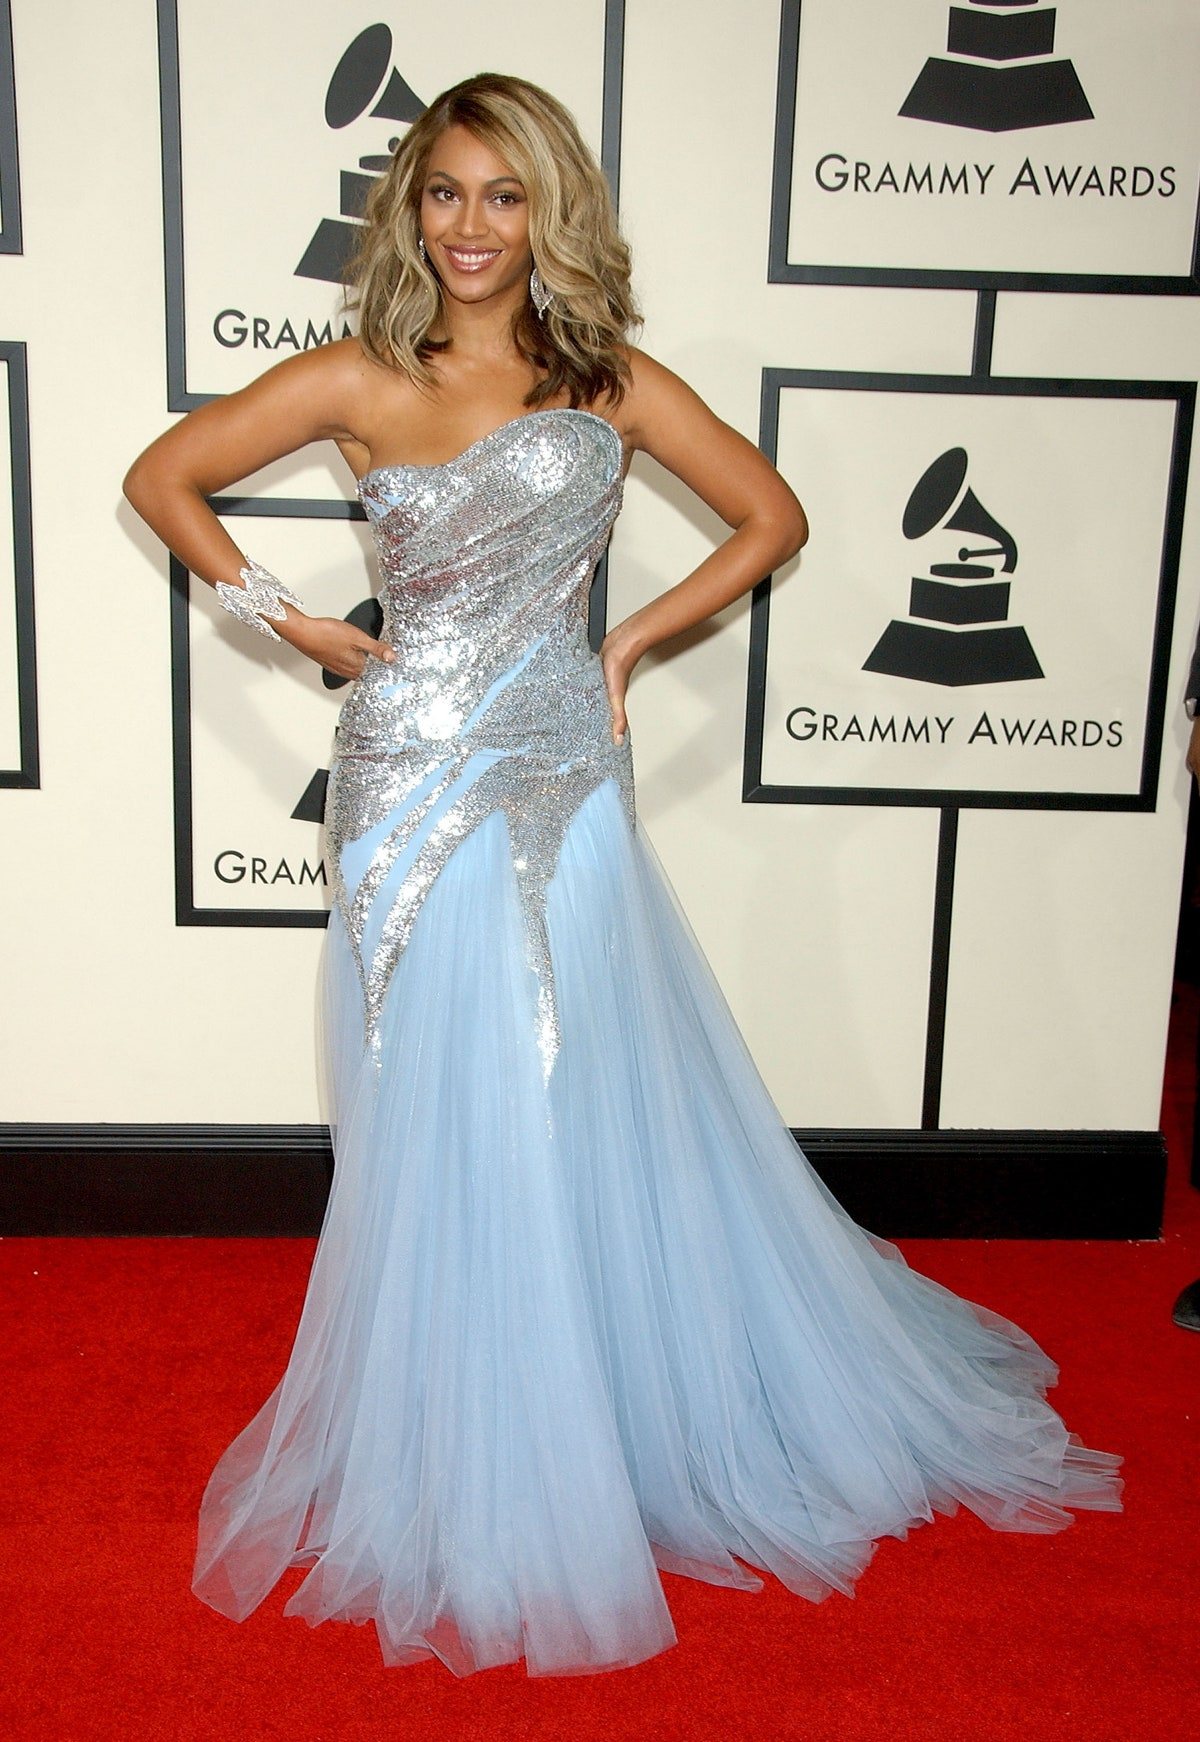 elie saab icy blue dress as seen on beyonce at the grammy awards 2008